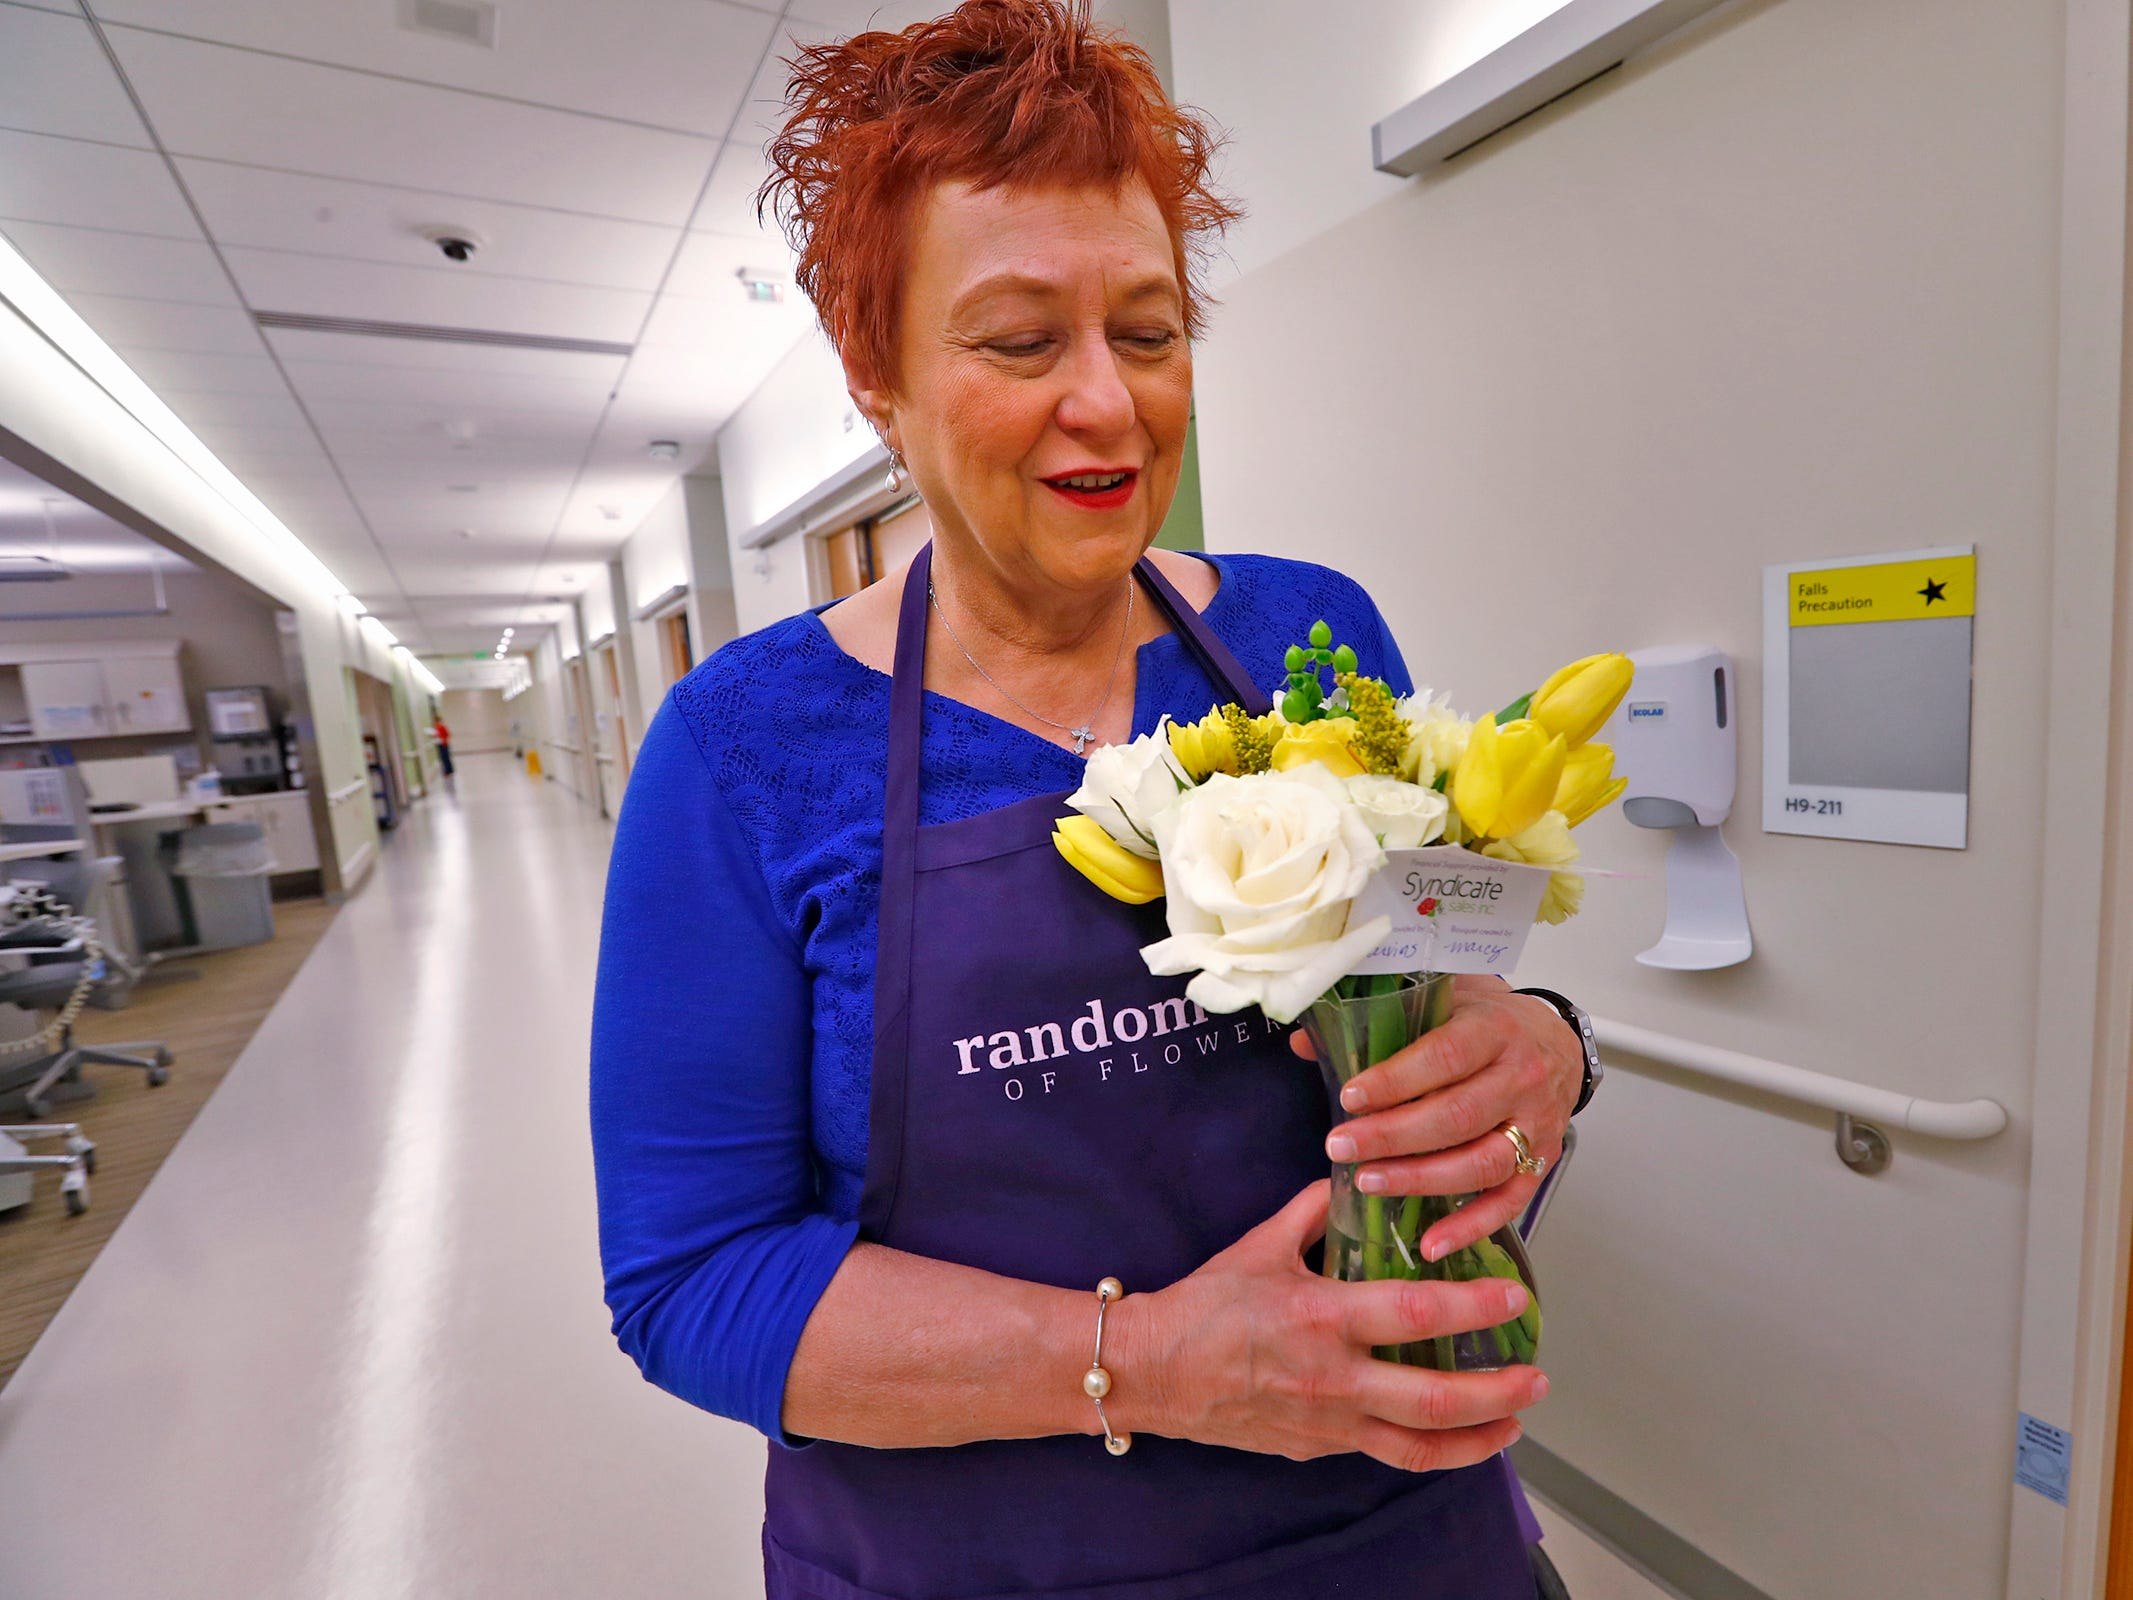 Kathy Bradfield, with Random Acts of Flowers, gets ready to deliver flowers to a patient, at Sidney & Lois Eskenazi Hospital, Thursday, Nov. 29, 2018.  The newest branch of the national floral nonprofit has been delivering the flowers to patients to offer hope, encouragement and smiles, for about two years. This day, Random Acts of Flowers delivered their 50,000th bouquet.